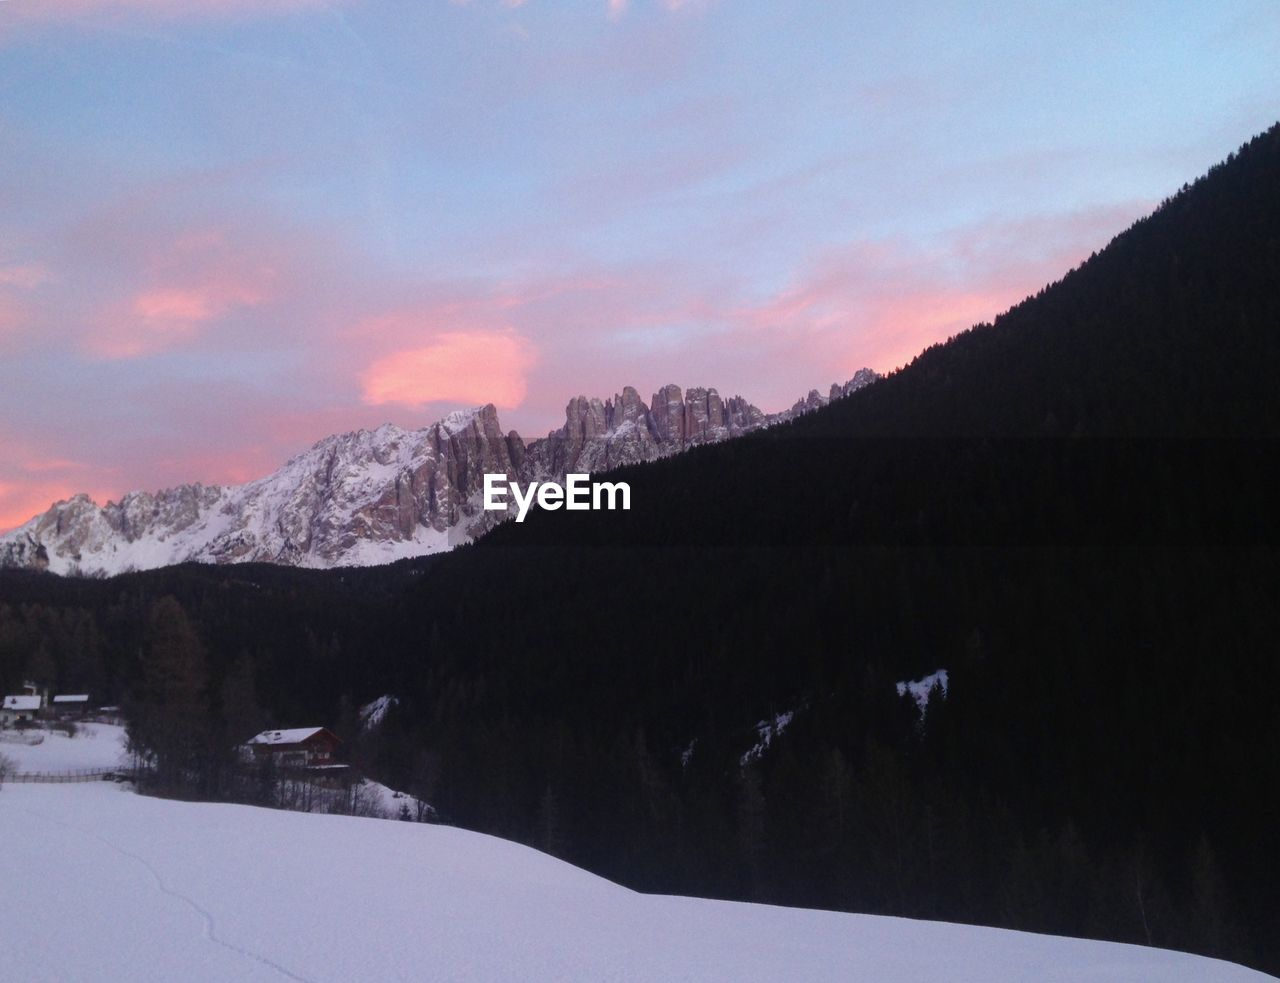 snow, winter, mountain, cold temperature, sky, nature, beauty in nature, scenics, landscape, tranquility, sunset, mountain range, outdoors, no people, range, day